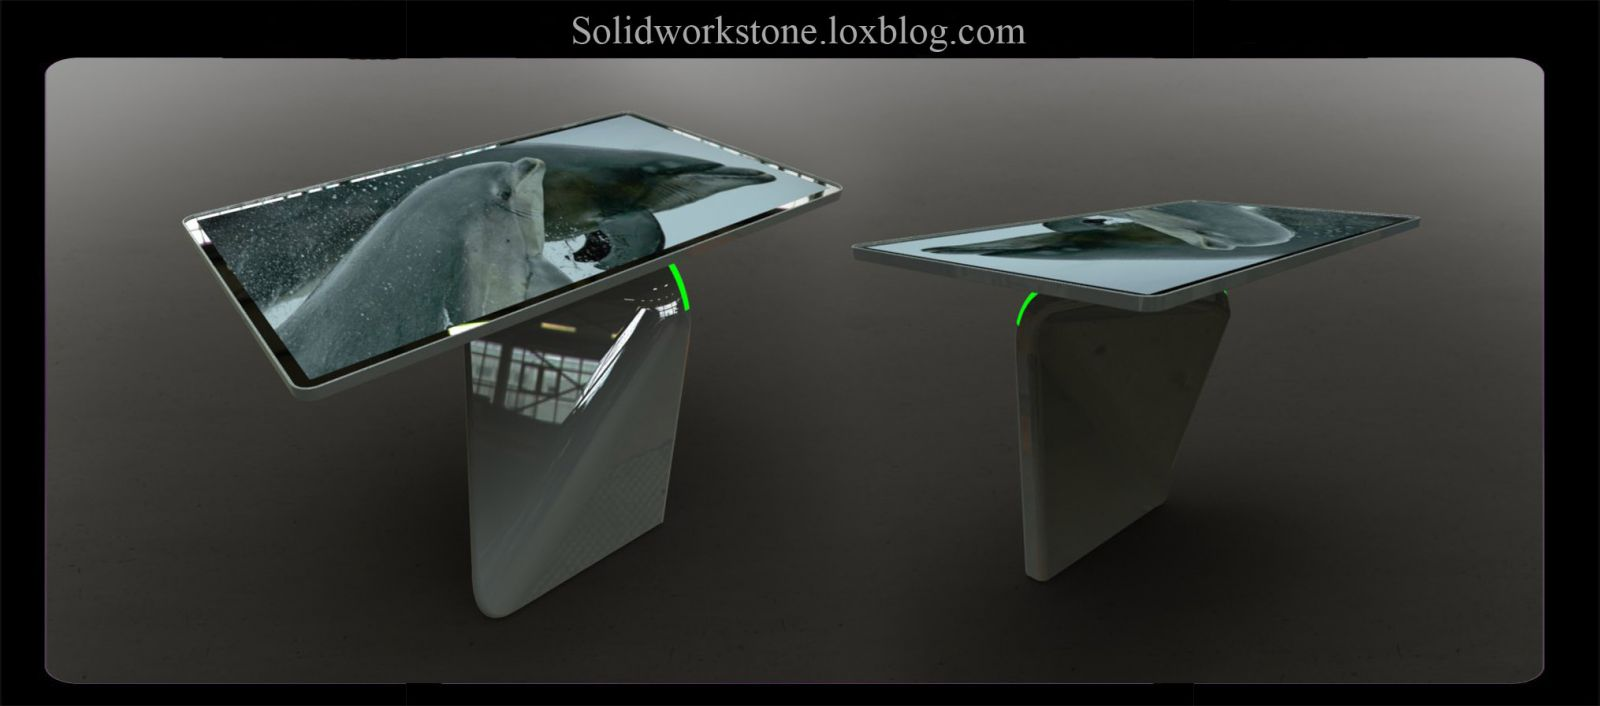 Solidworks for Table w3schools